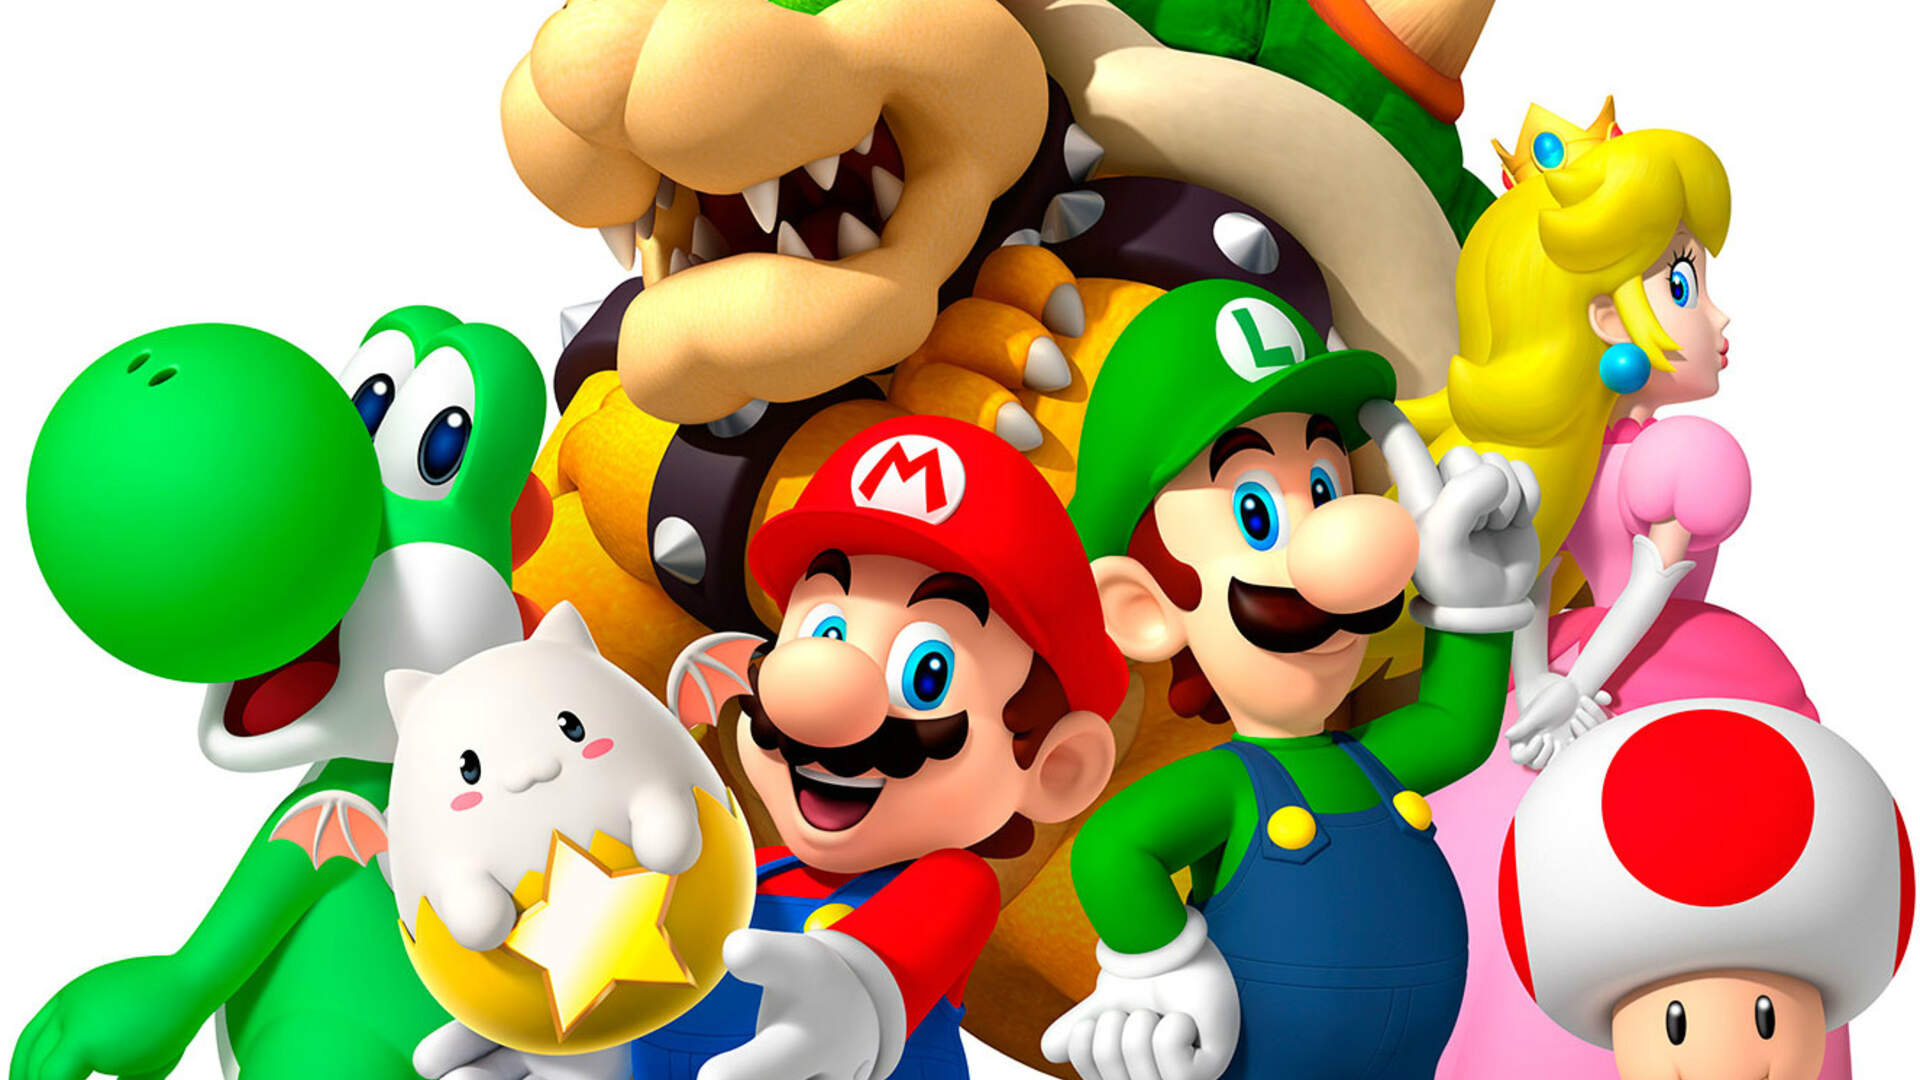 Nintendo Celebrates Mario Day with Discounts and Bundles on the Best Mario Games